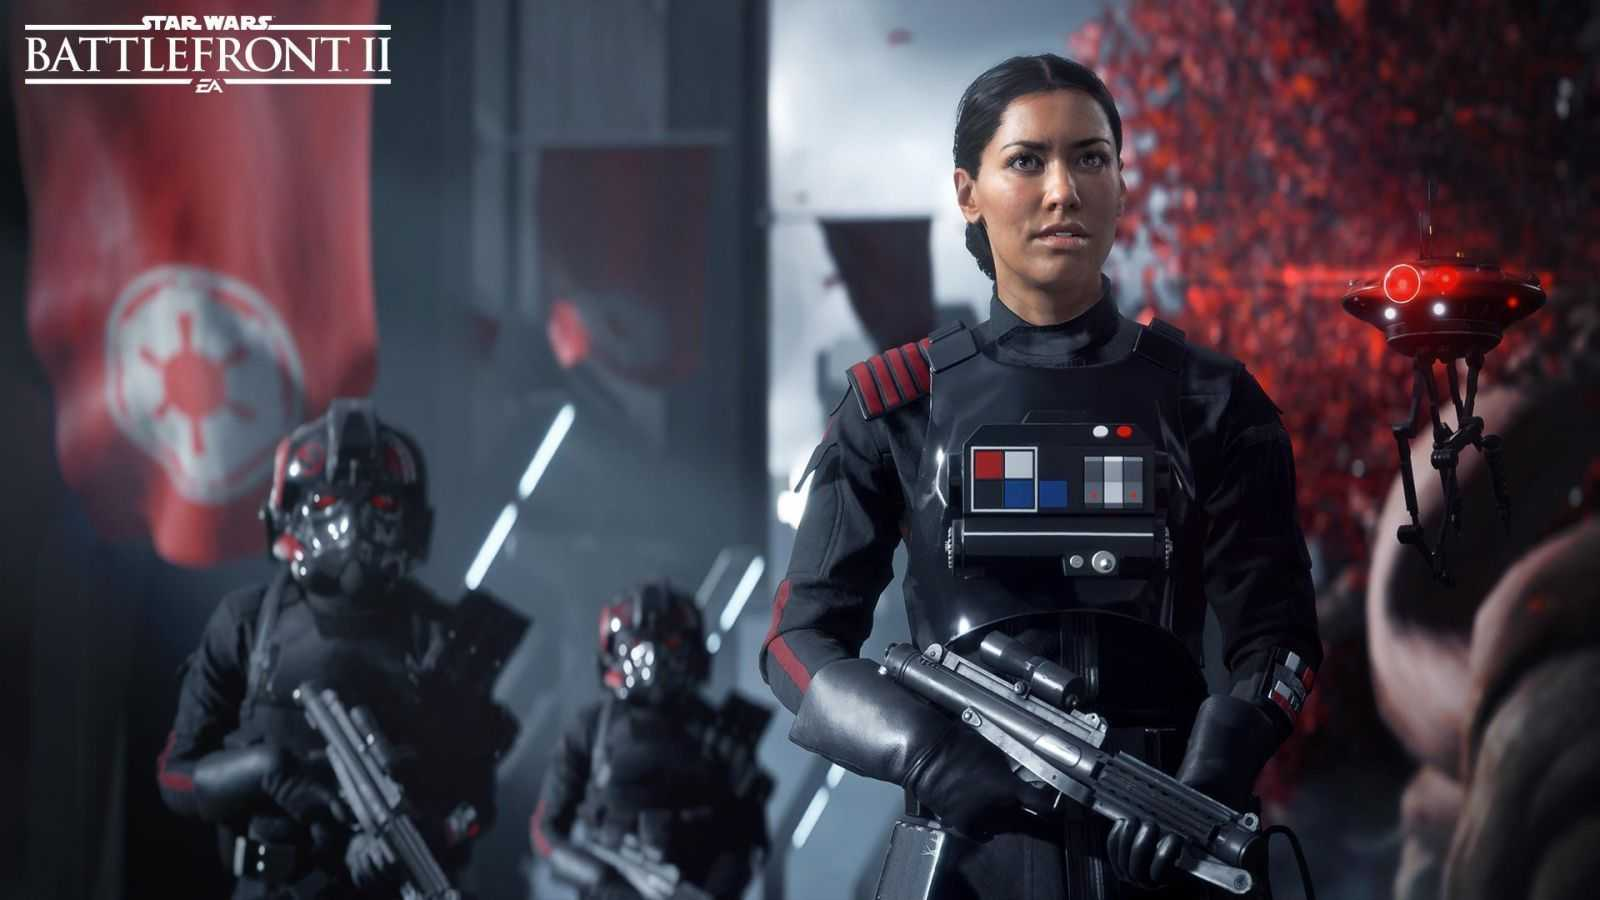 SWBFII Reveal Screenshot 3 SP - EA Games представила новую игру Star Wars: Battlefront II